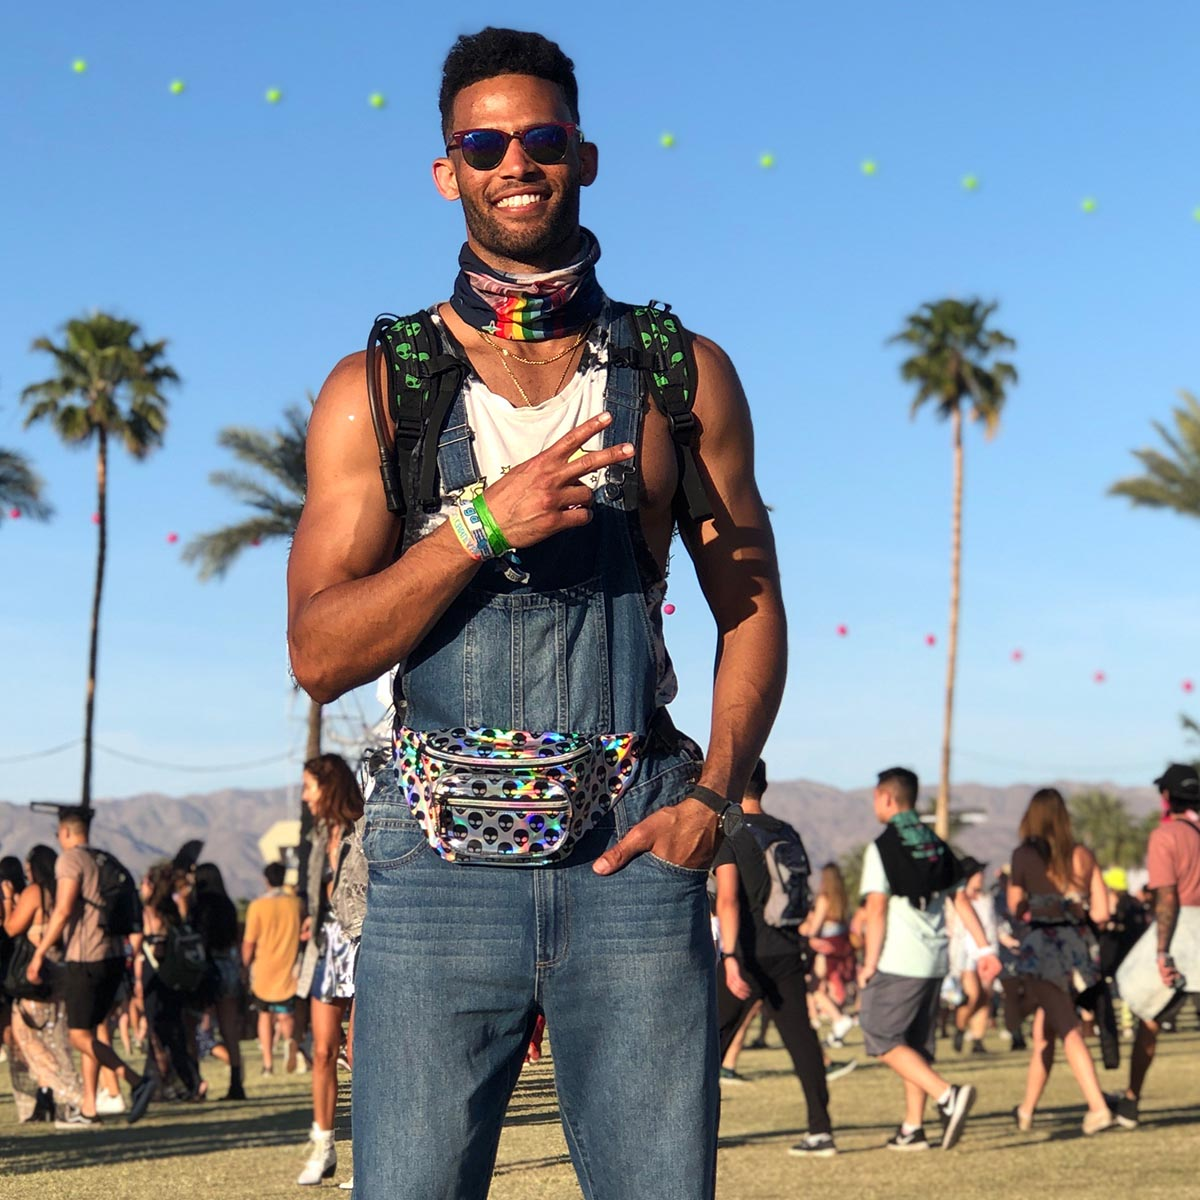 Male wearing Alien holograhpic waist pack